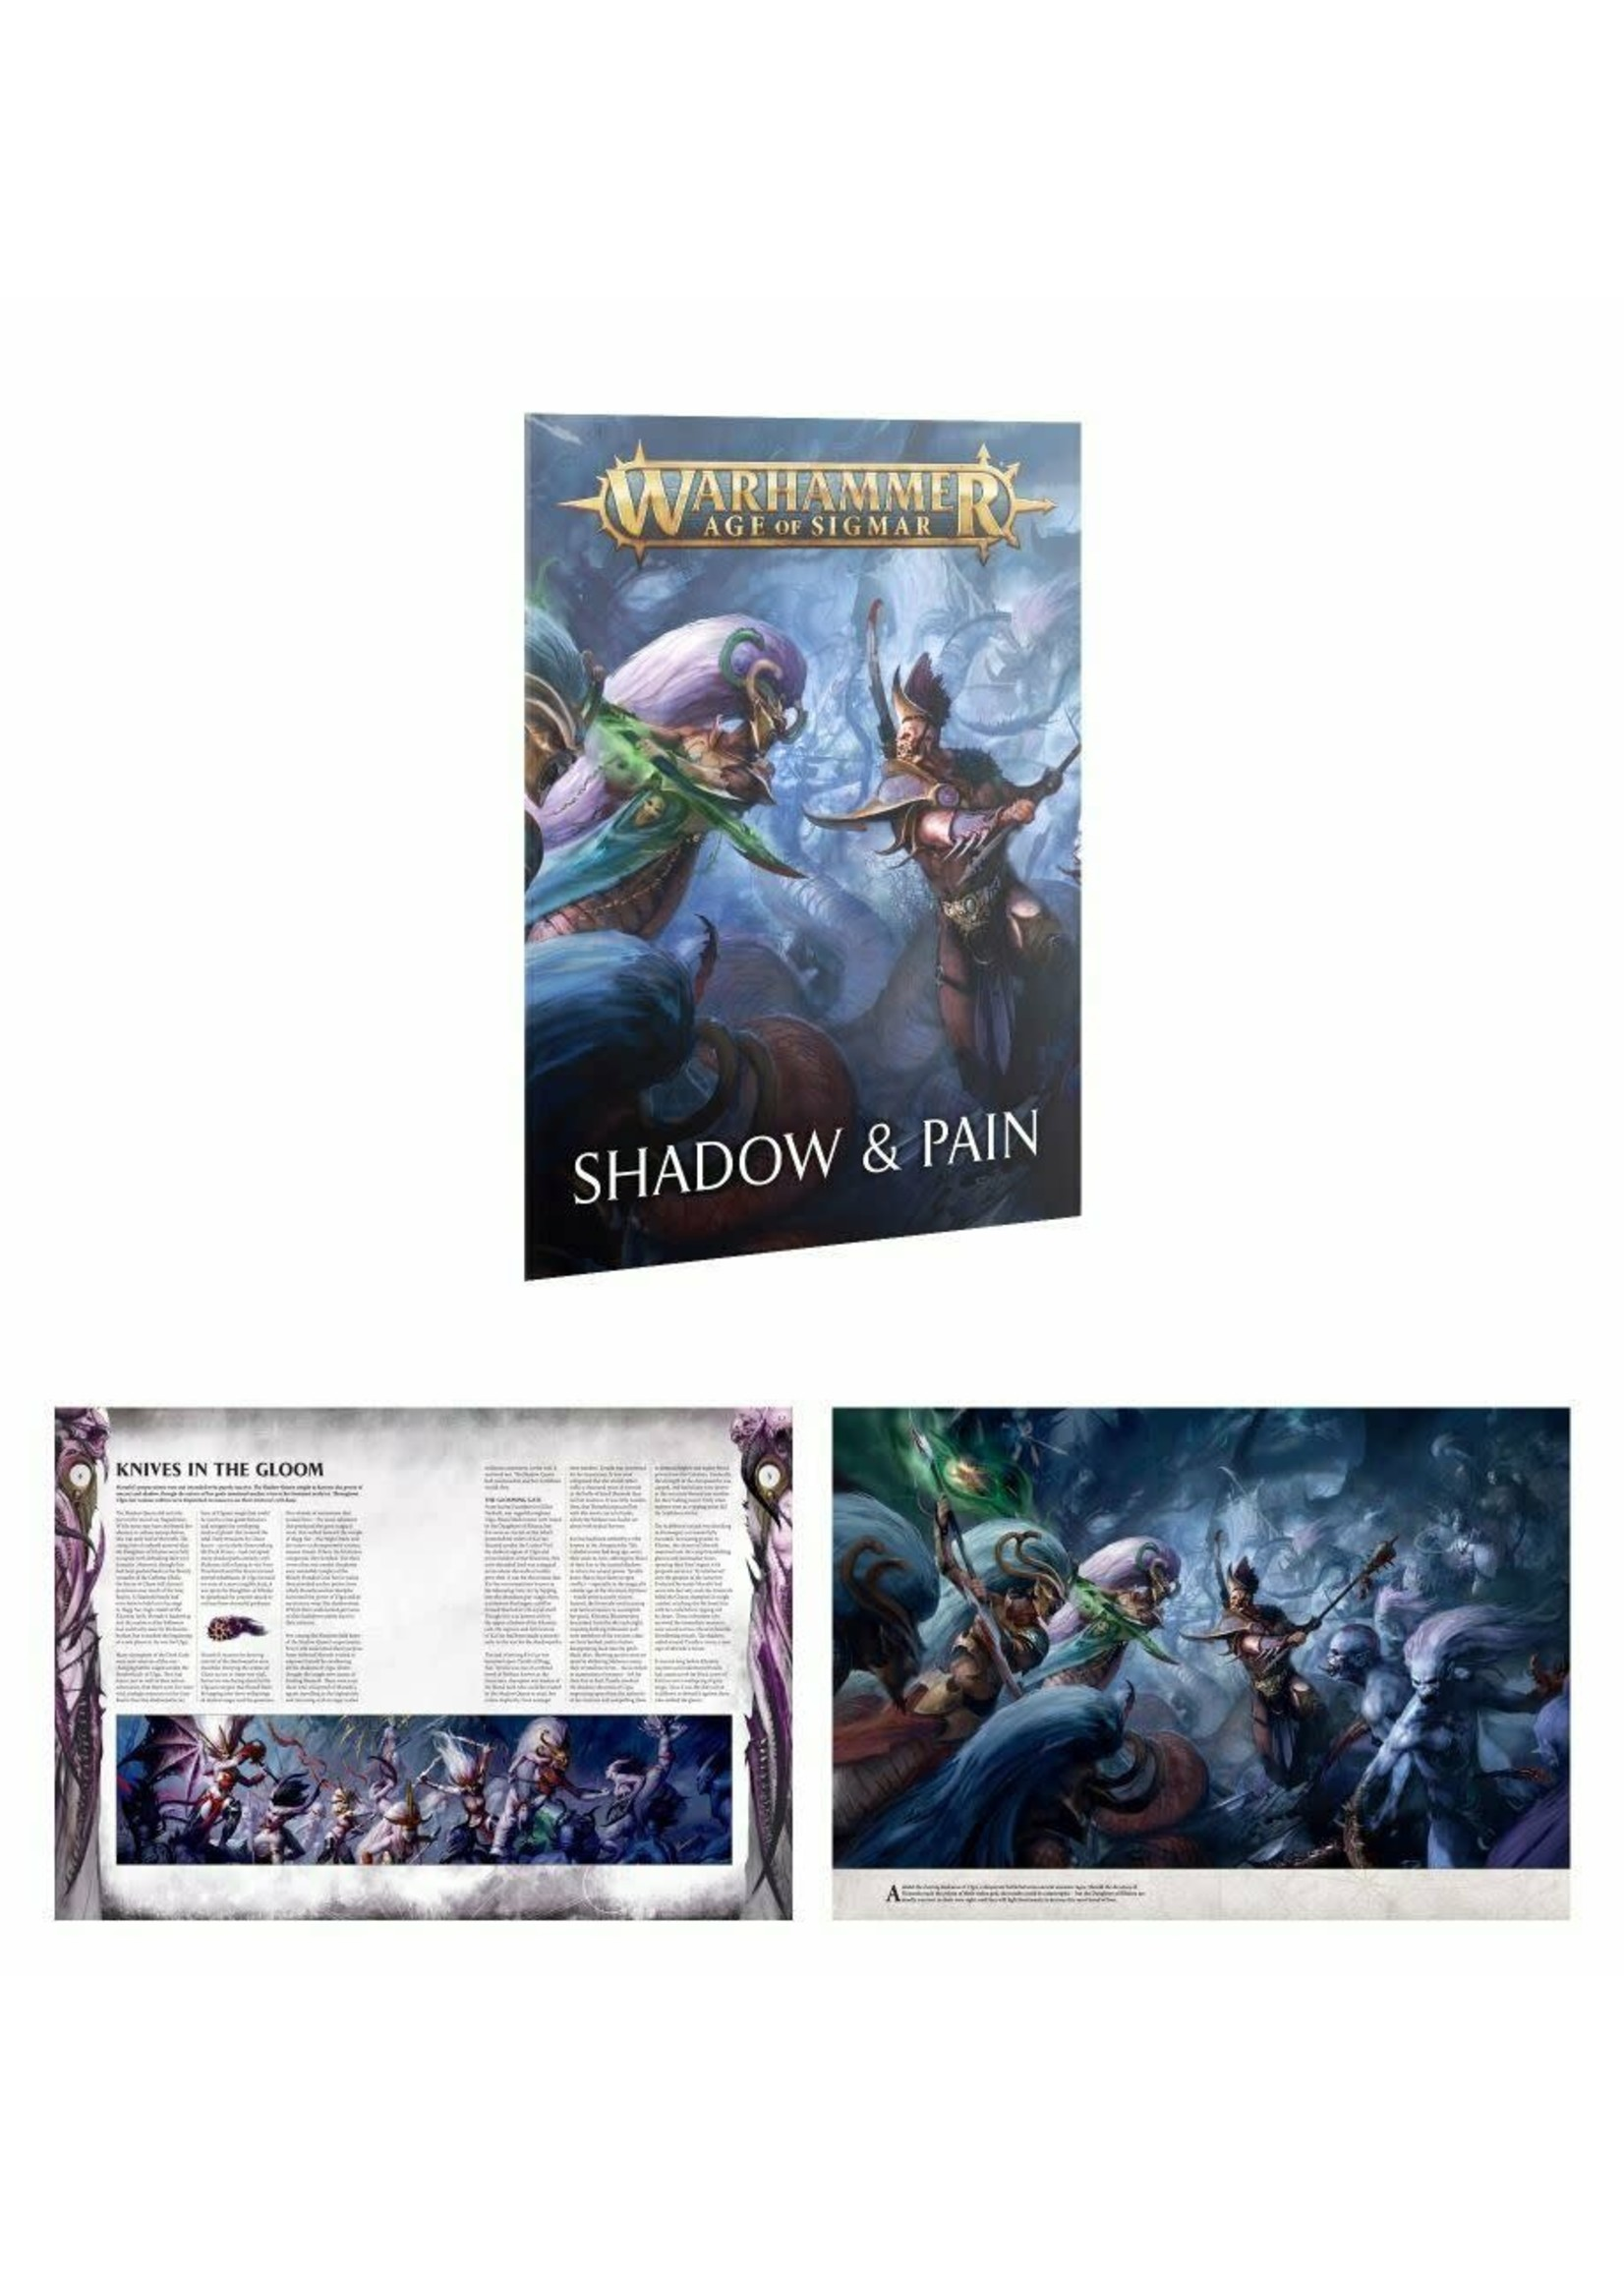 Warhammer: Age of Sigmar Age of Sigmar: Shadow and Pain Box